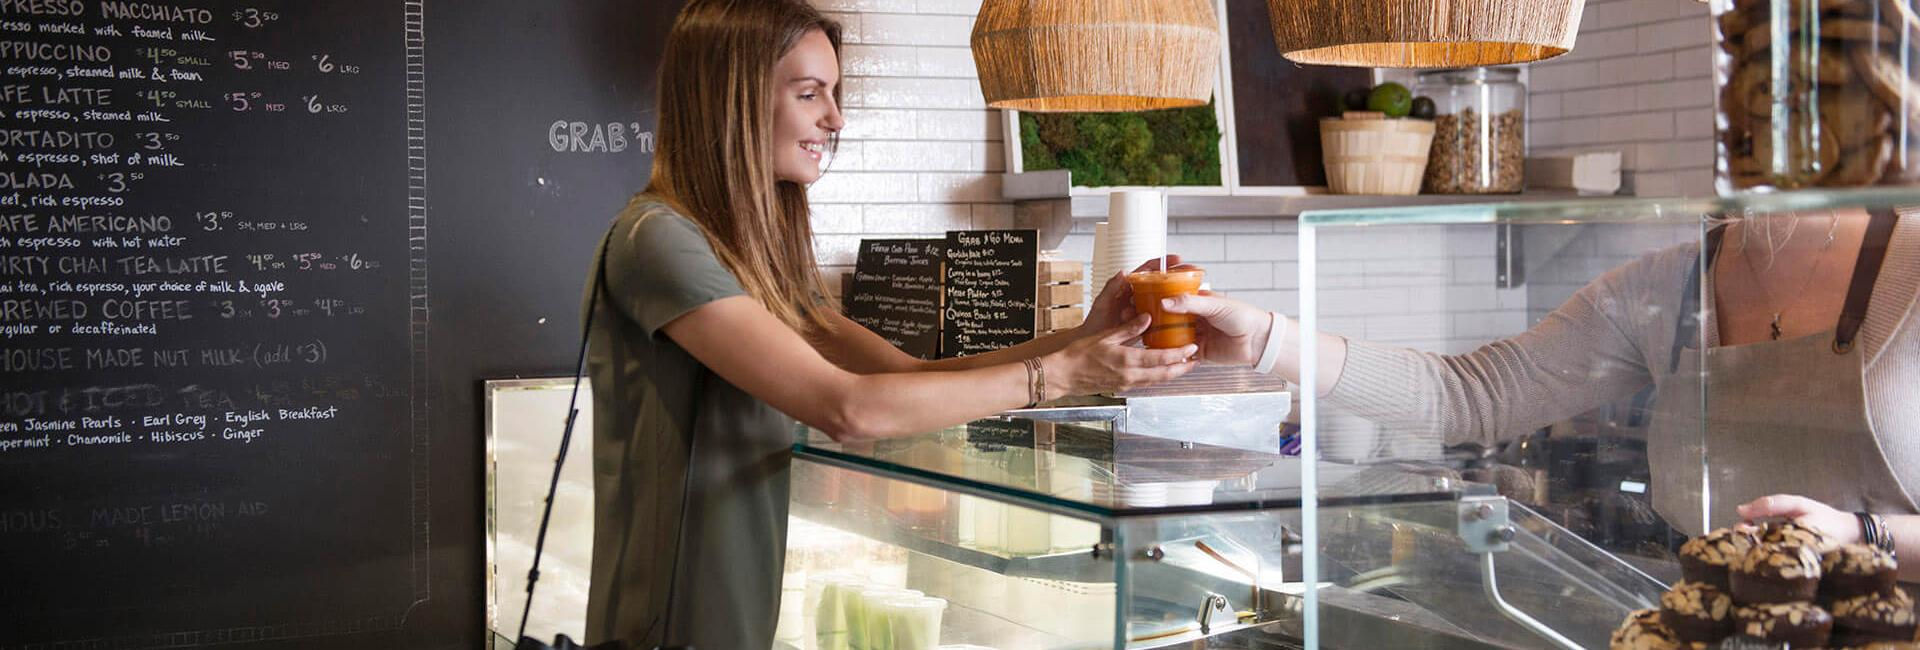 woman ordering food at neighbors cafe